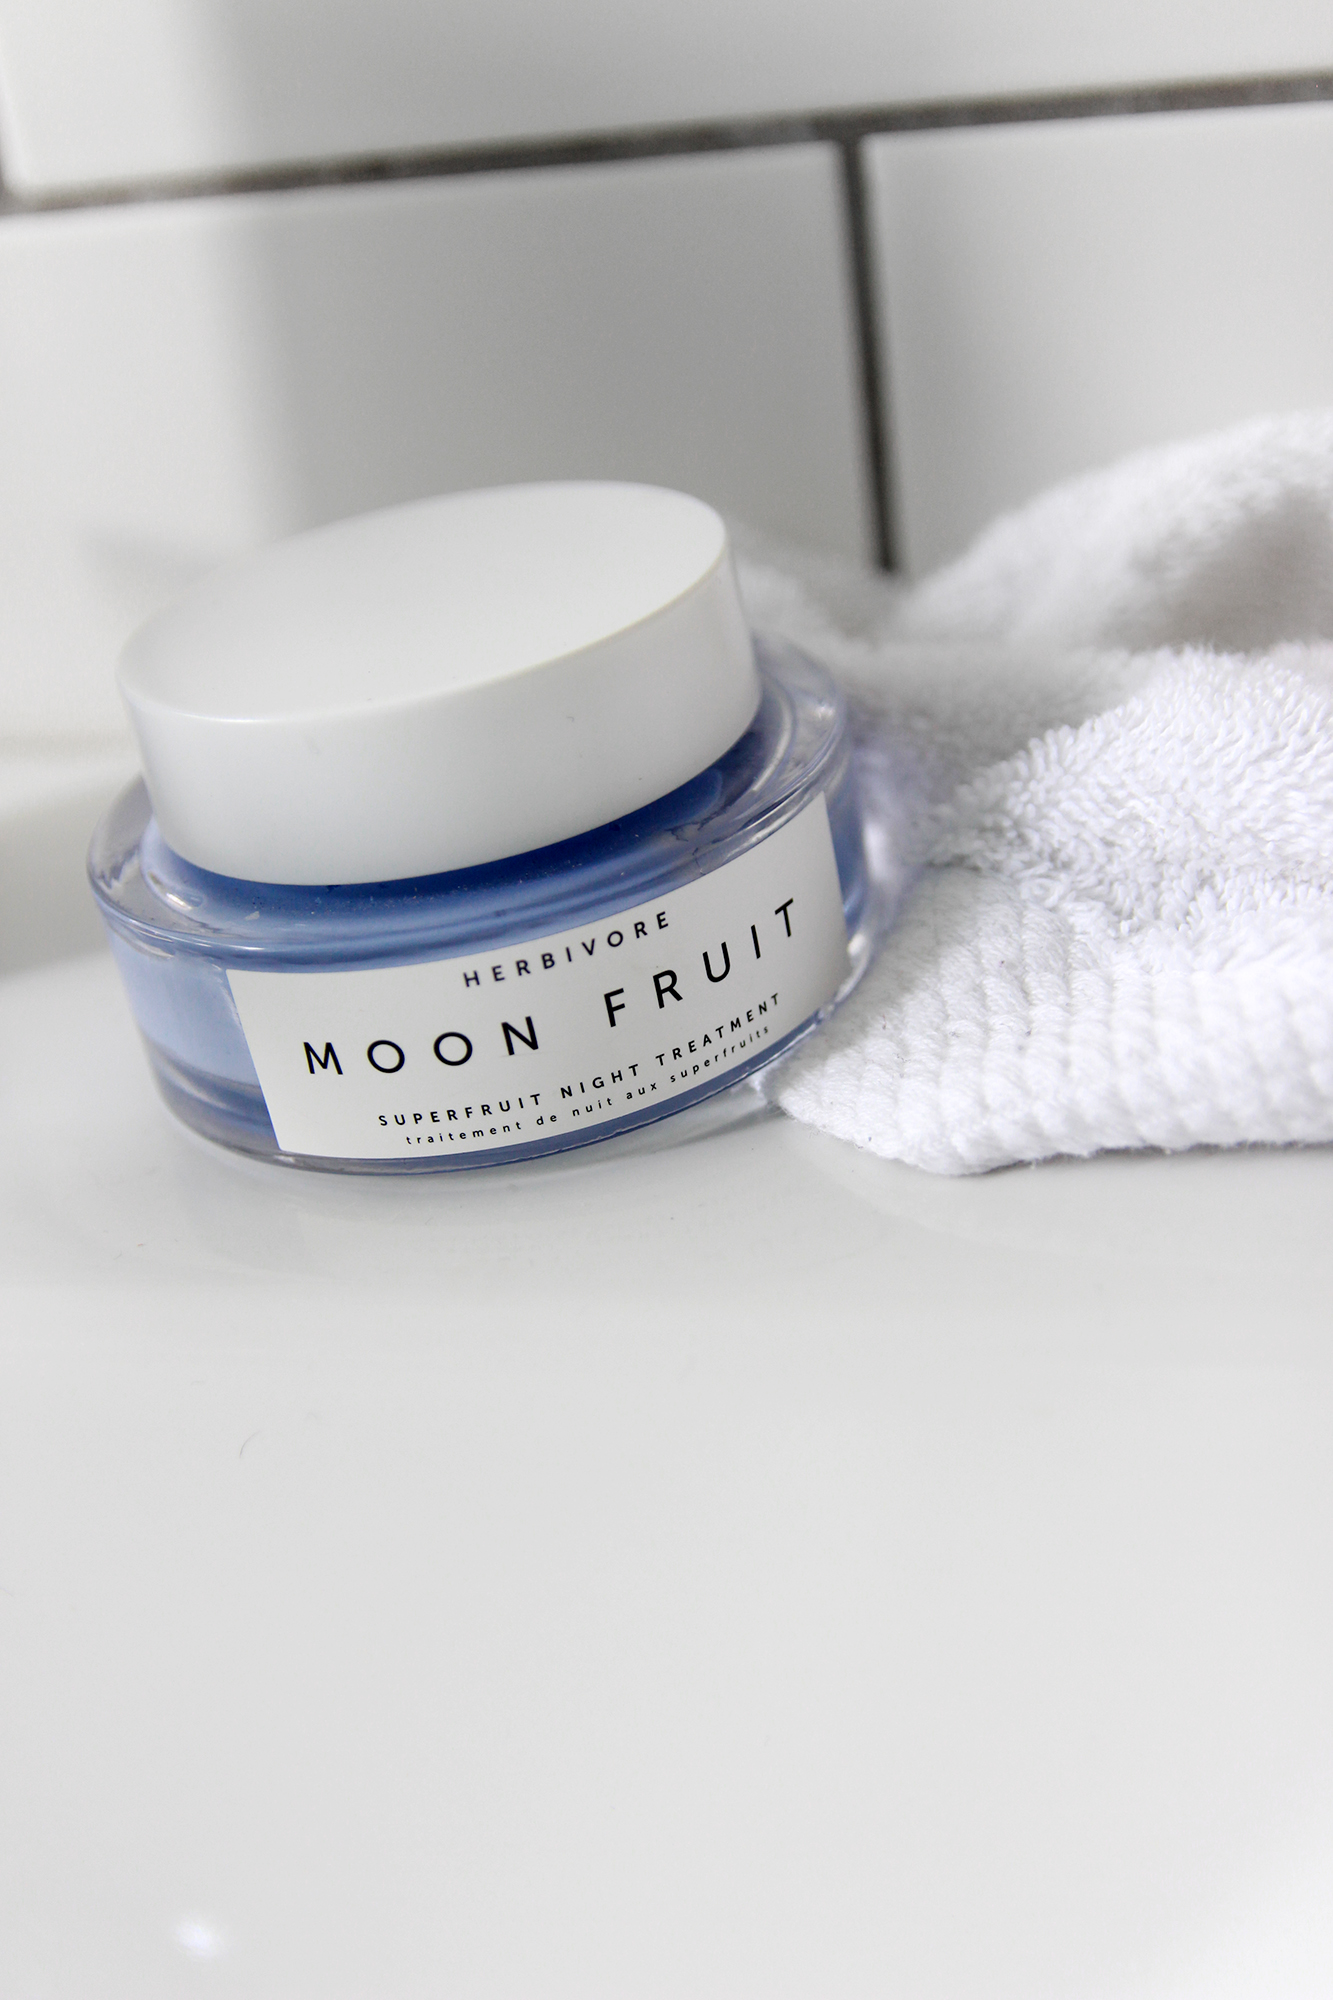 Herbivore Botanicals Moon Fruit Night Treatment Review